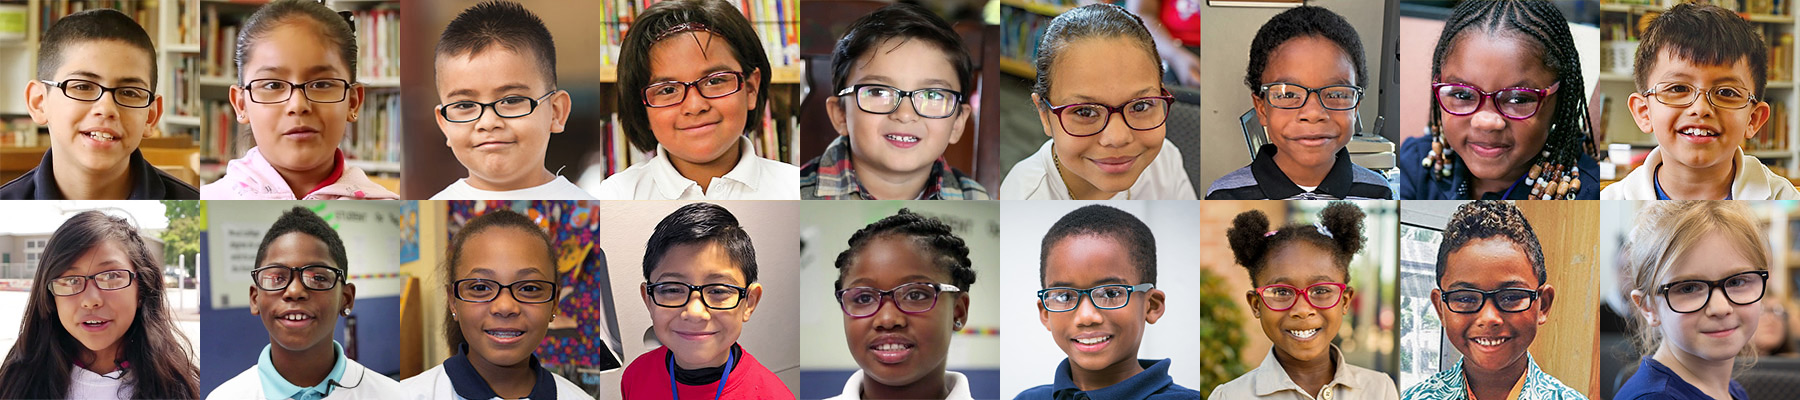 081a01ba4af7 We provide free eye exams and glasses to kids in low-income communities